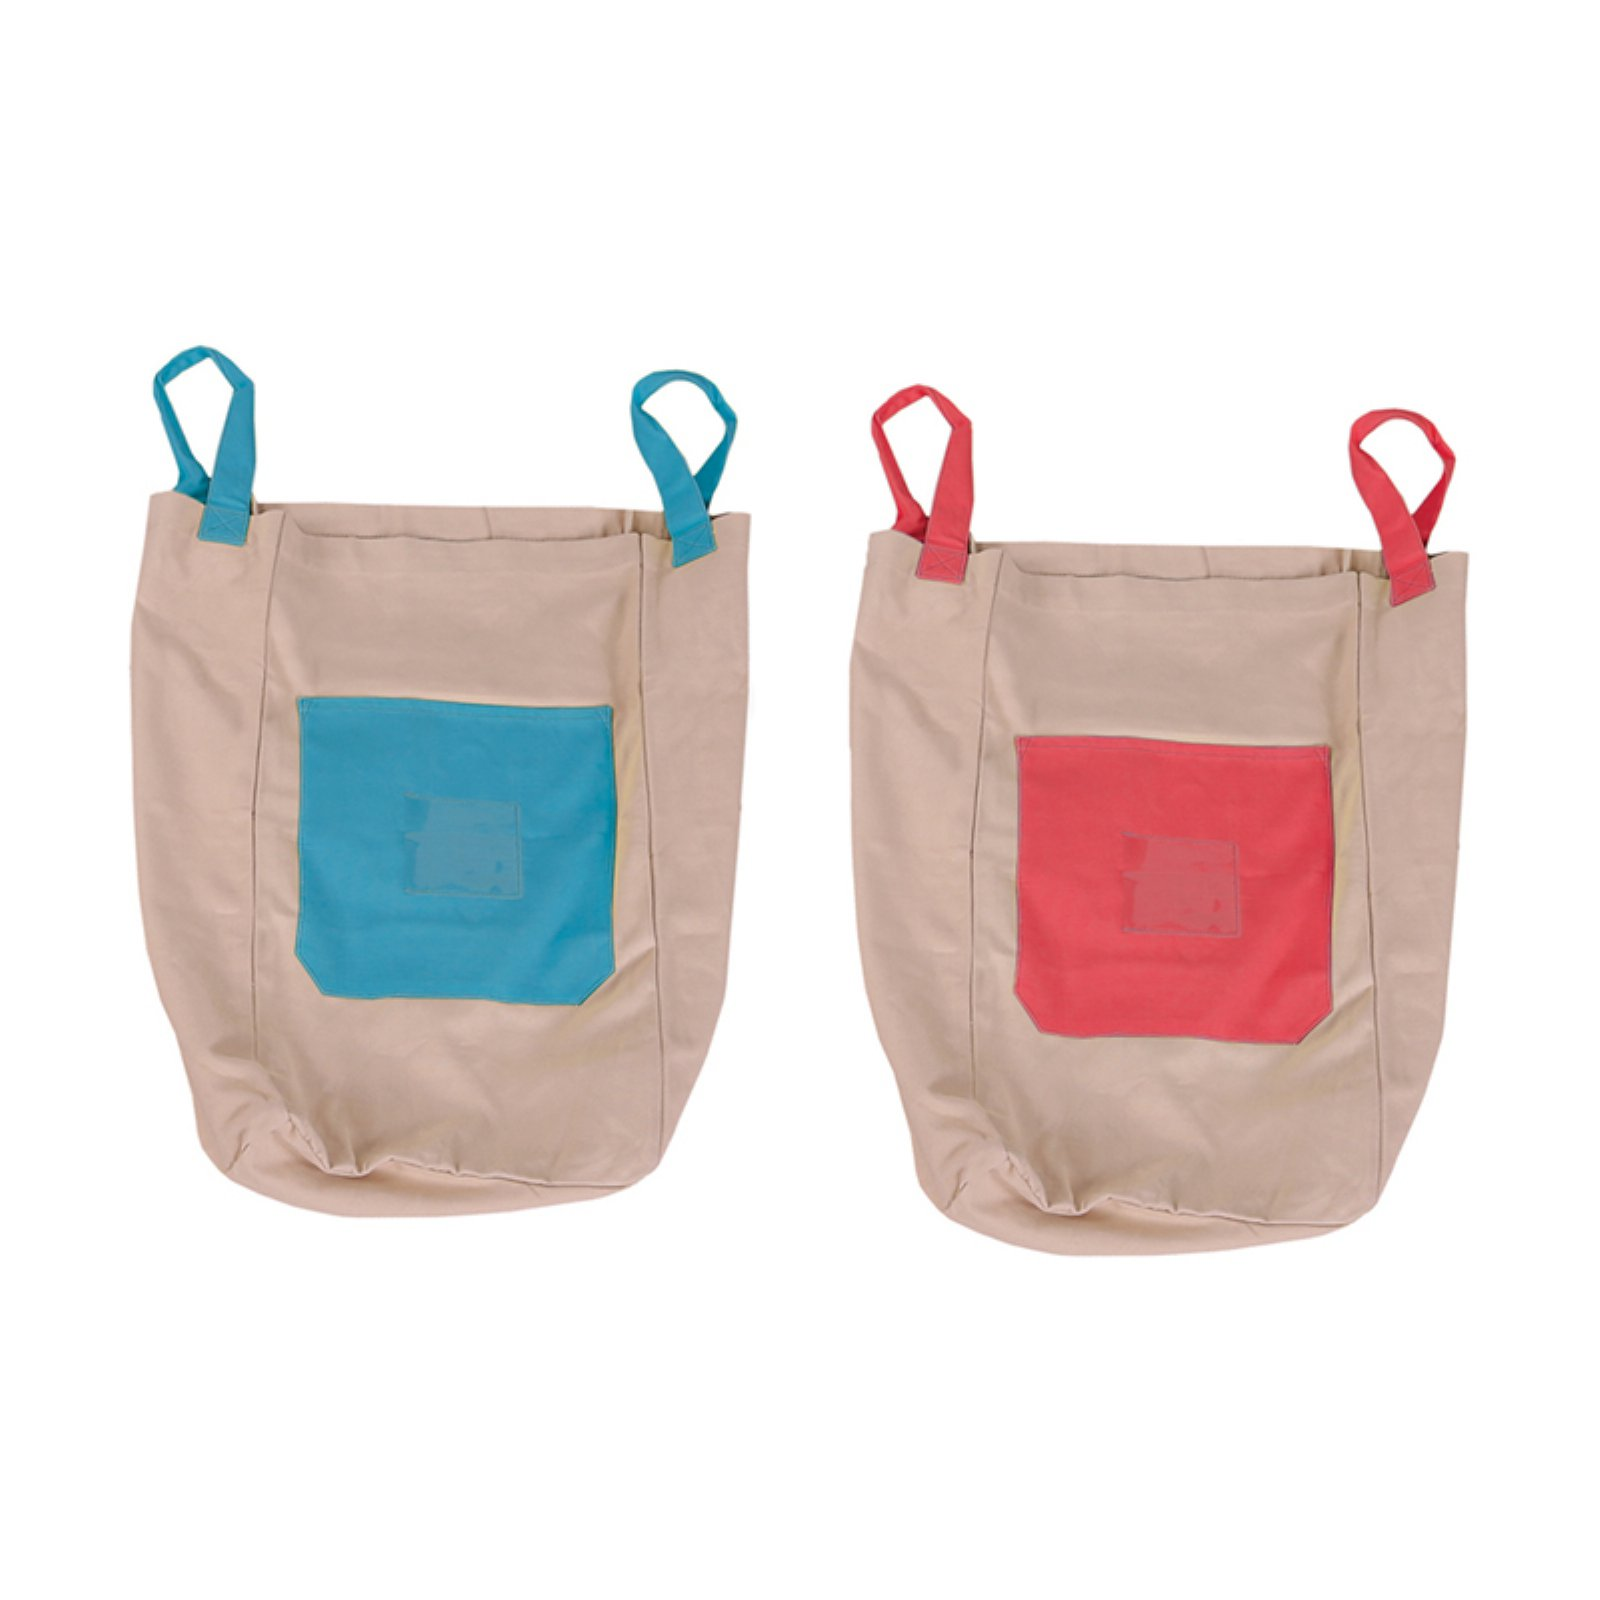 Pacific Play Tents Cotton Canvas Jumping Sacks